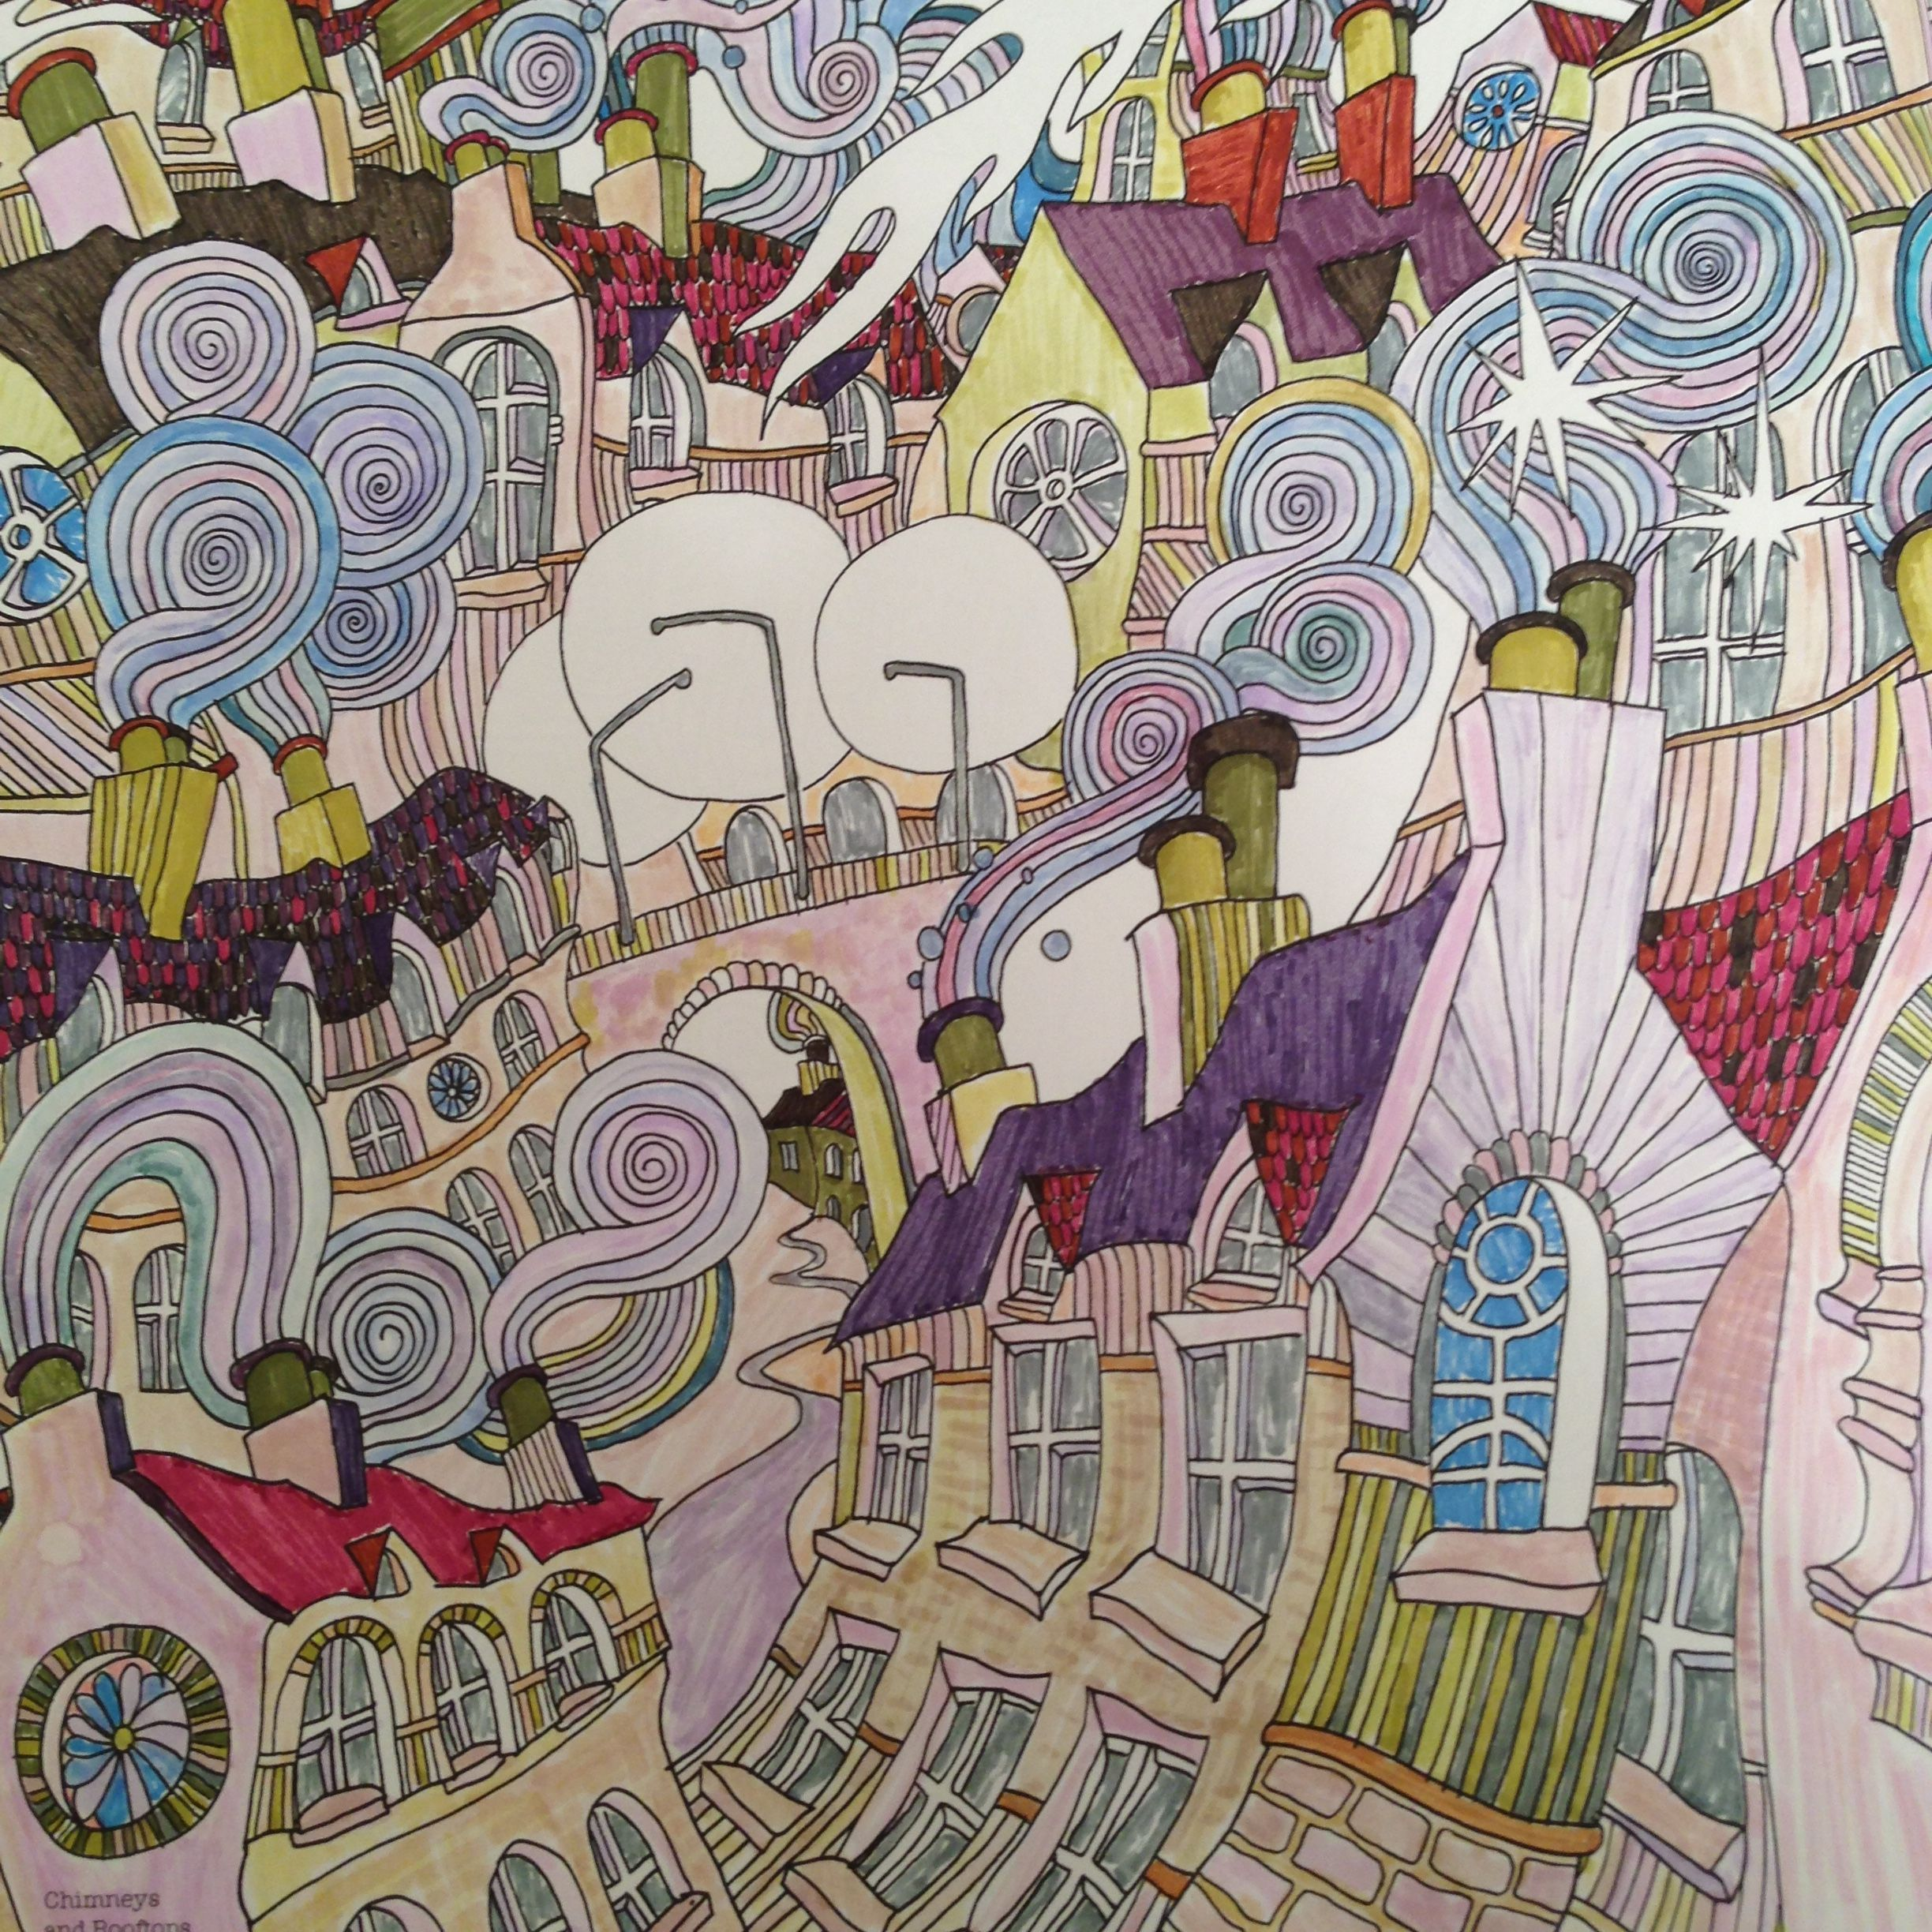 Th the magical city colouring in book - Chimneys And Rooftops From The Magical City Colouring Book By Lizzie Mary Cullen Coloured